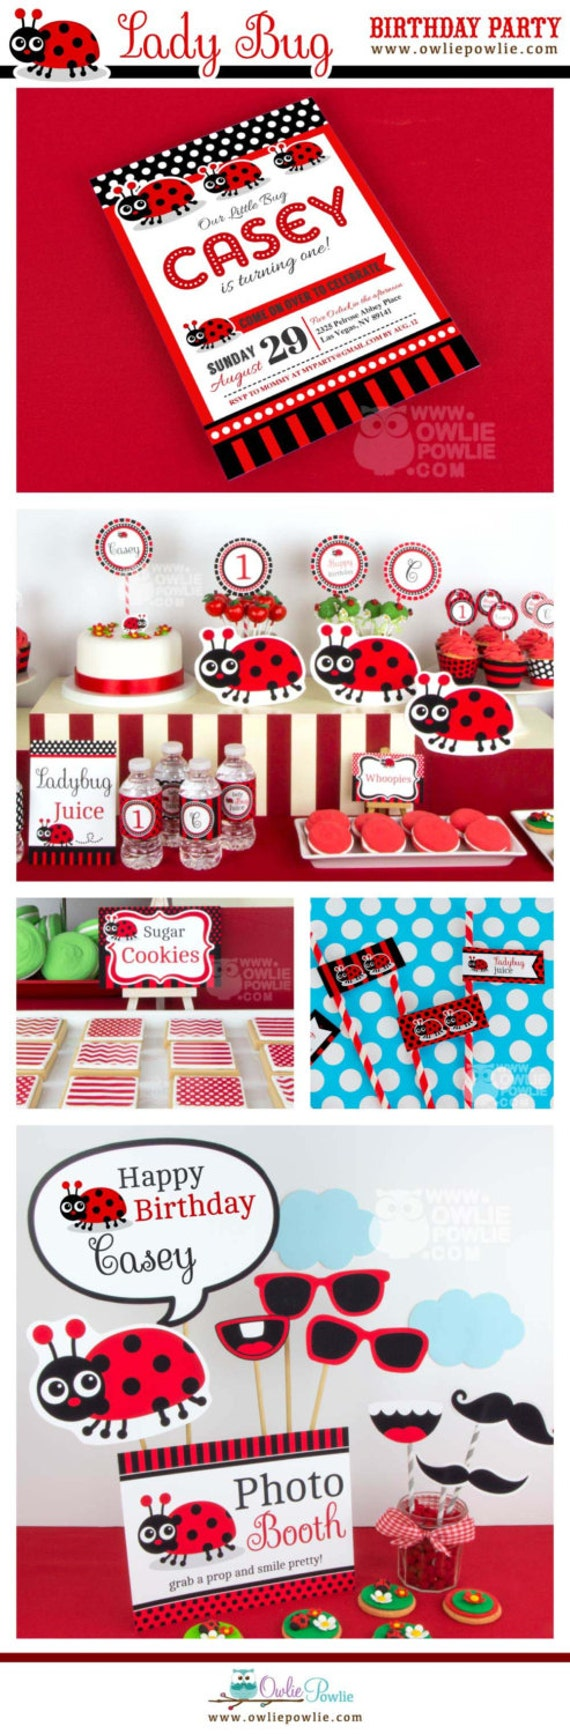 Lady bug birthday party printable package invitation lady bug birthday party printable package invitation instant download you edit yourself with adobe reader solutioingenieria Choice Image